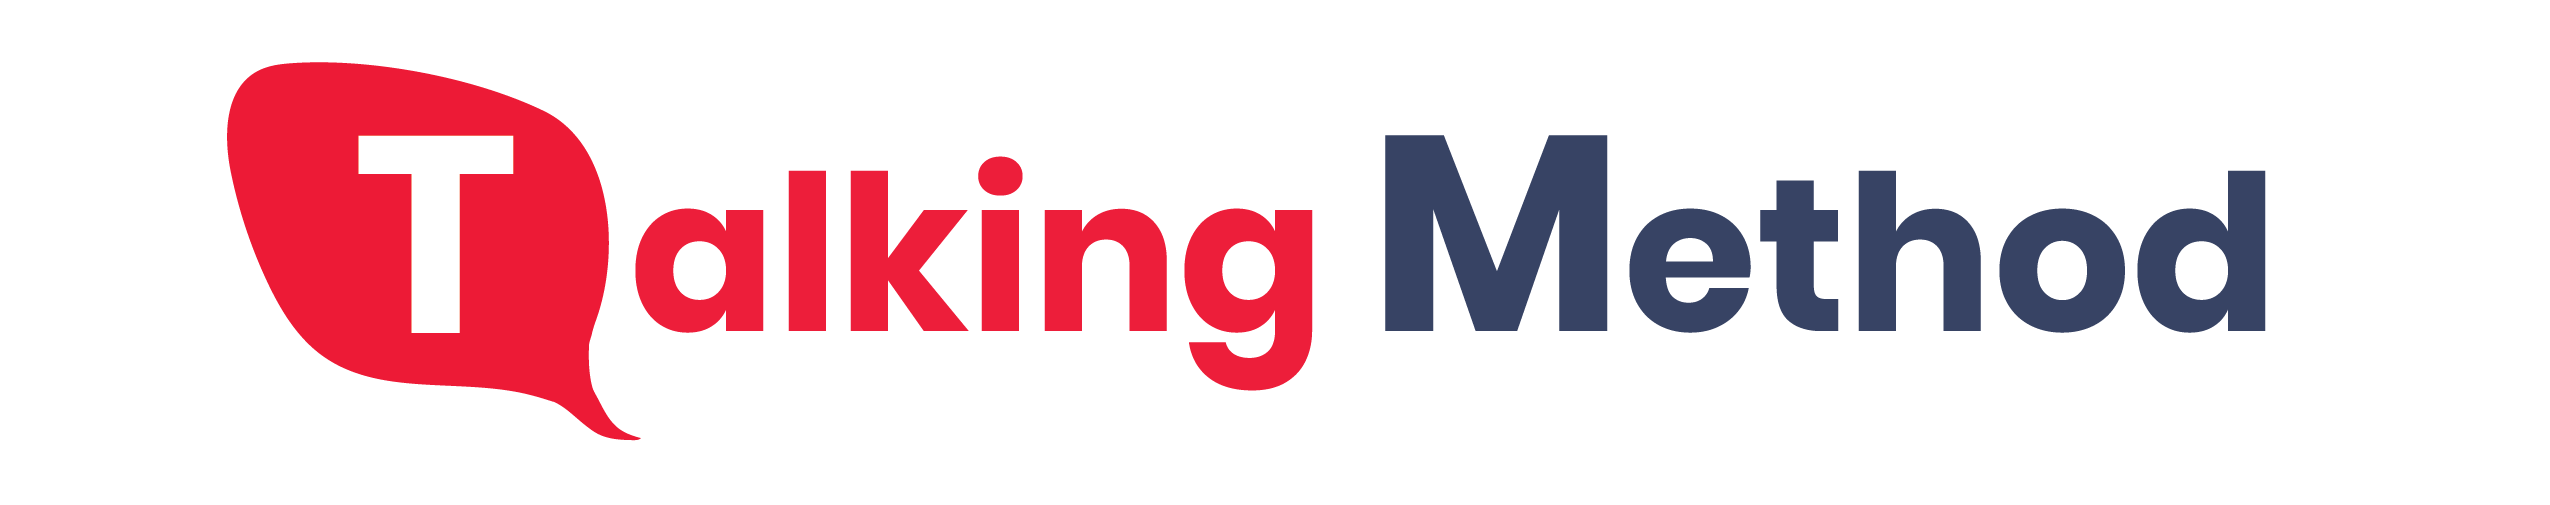 talking method logo